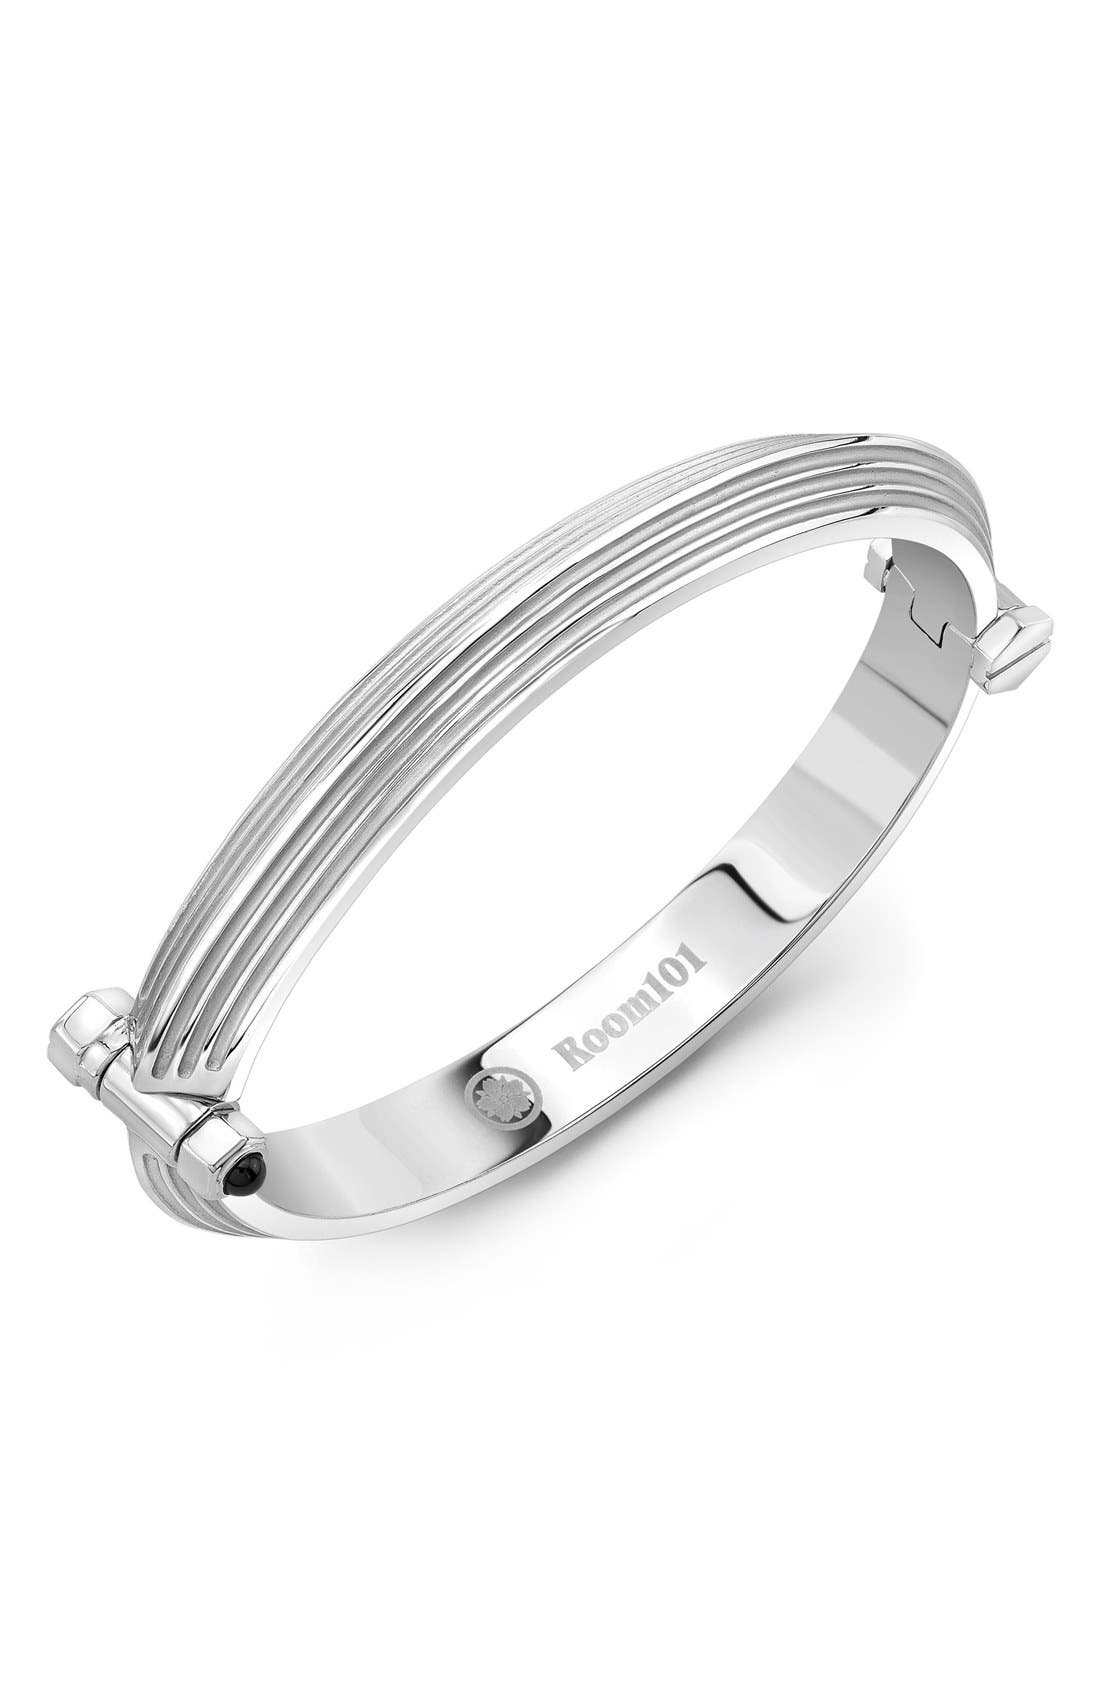 Alternate Image 1 Selected - Room101 Blade Bangle Bracelet